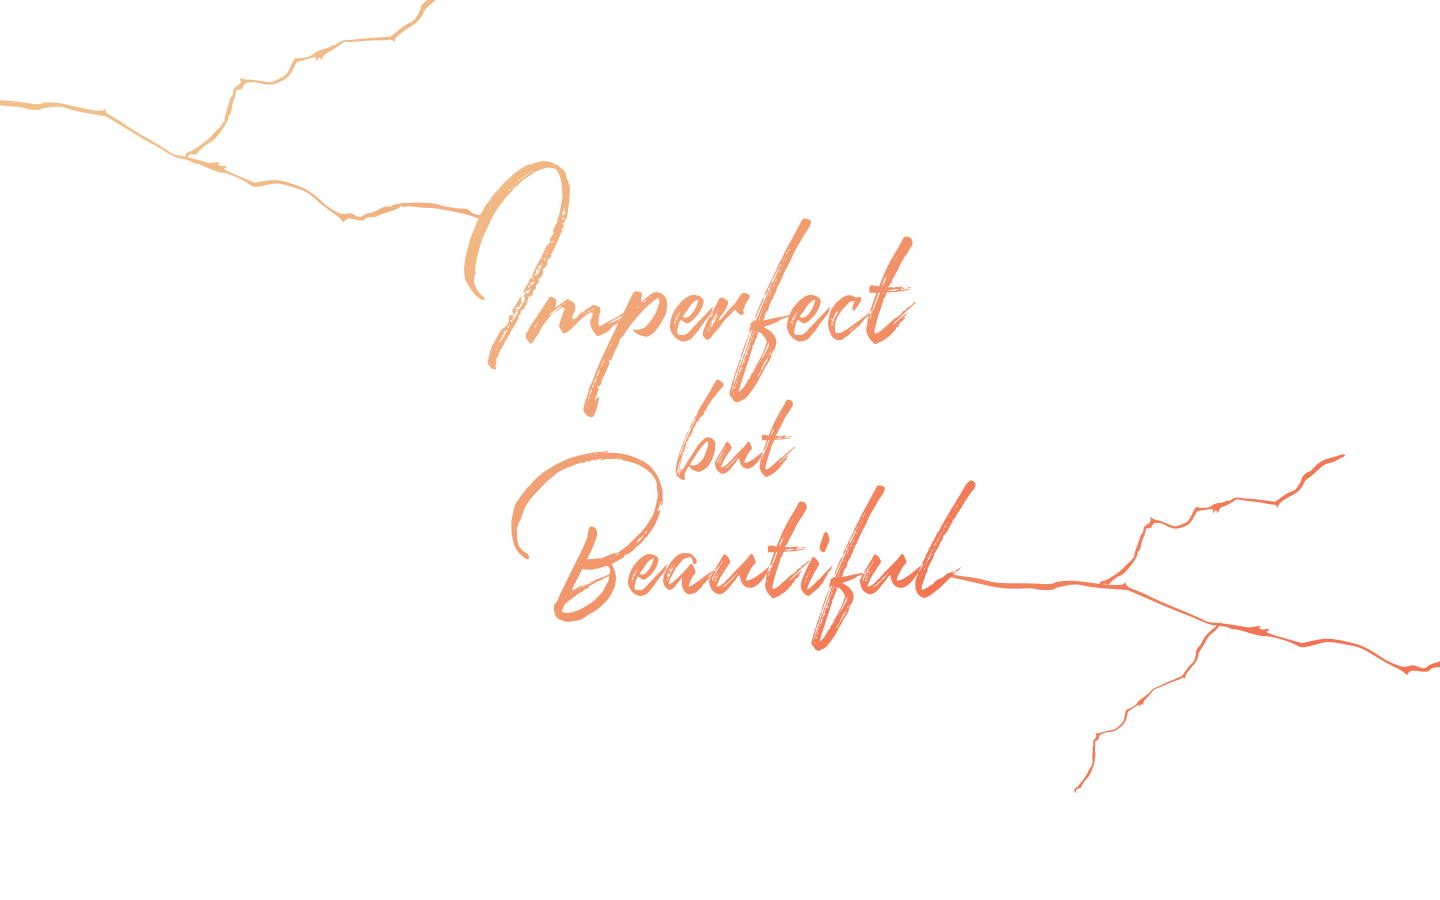 Imperfect but Beautiful